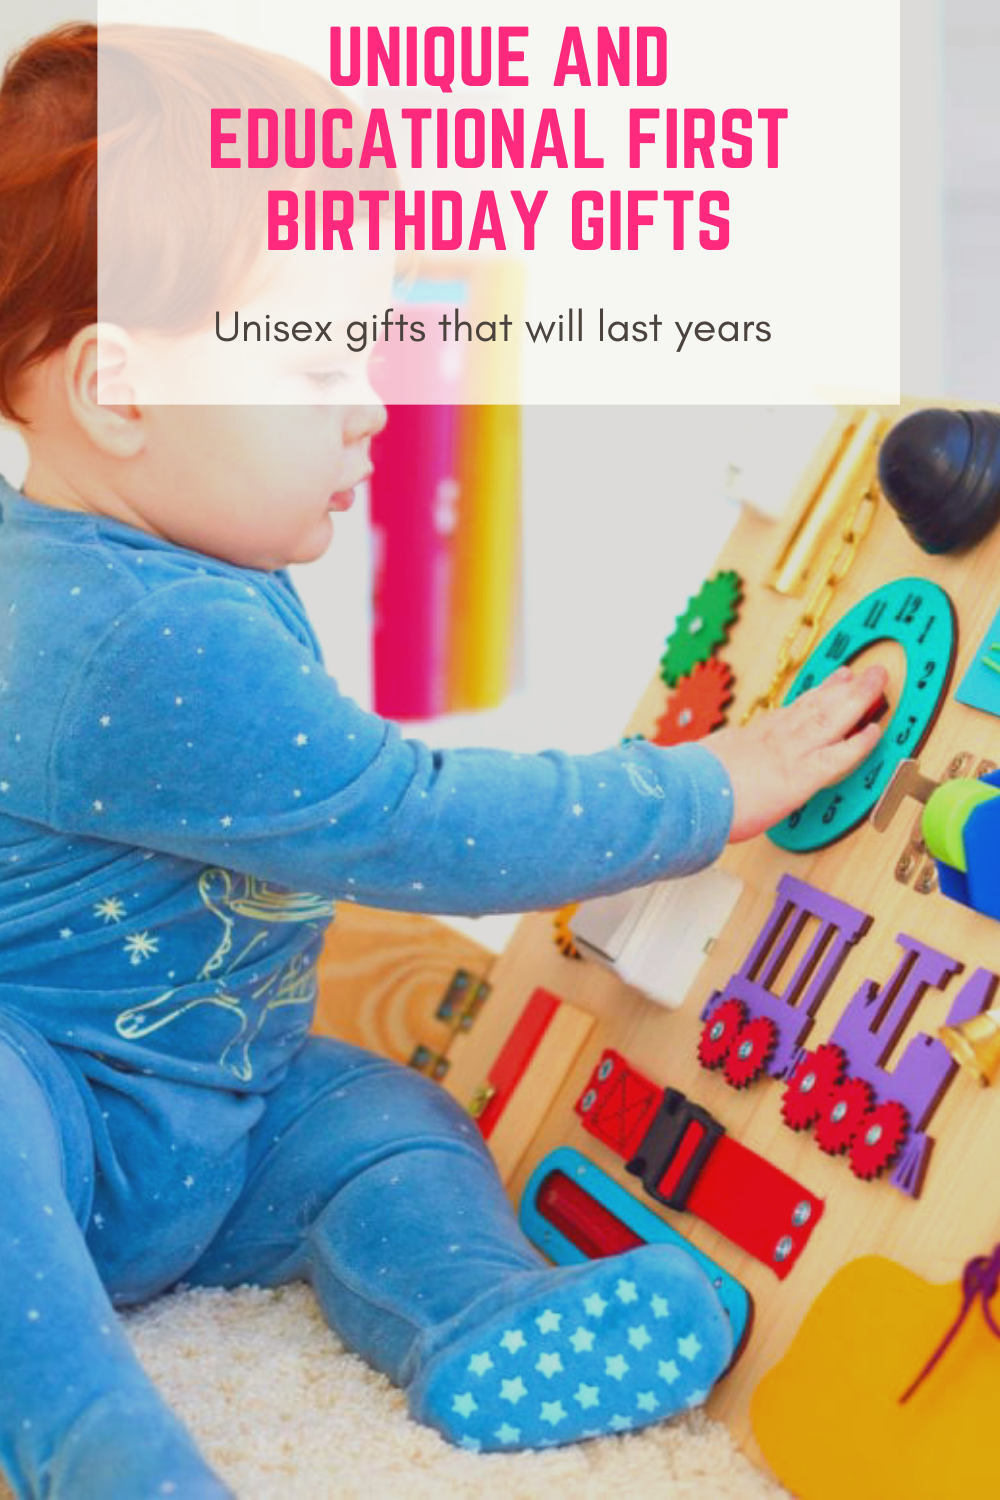 Educational first birthday gifts